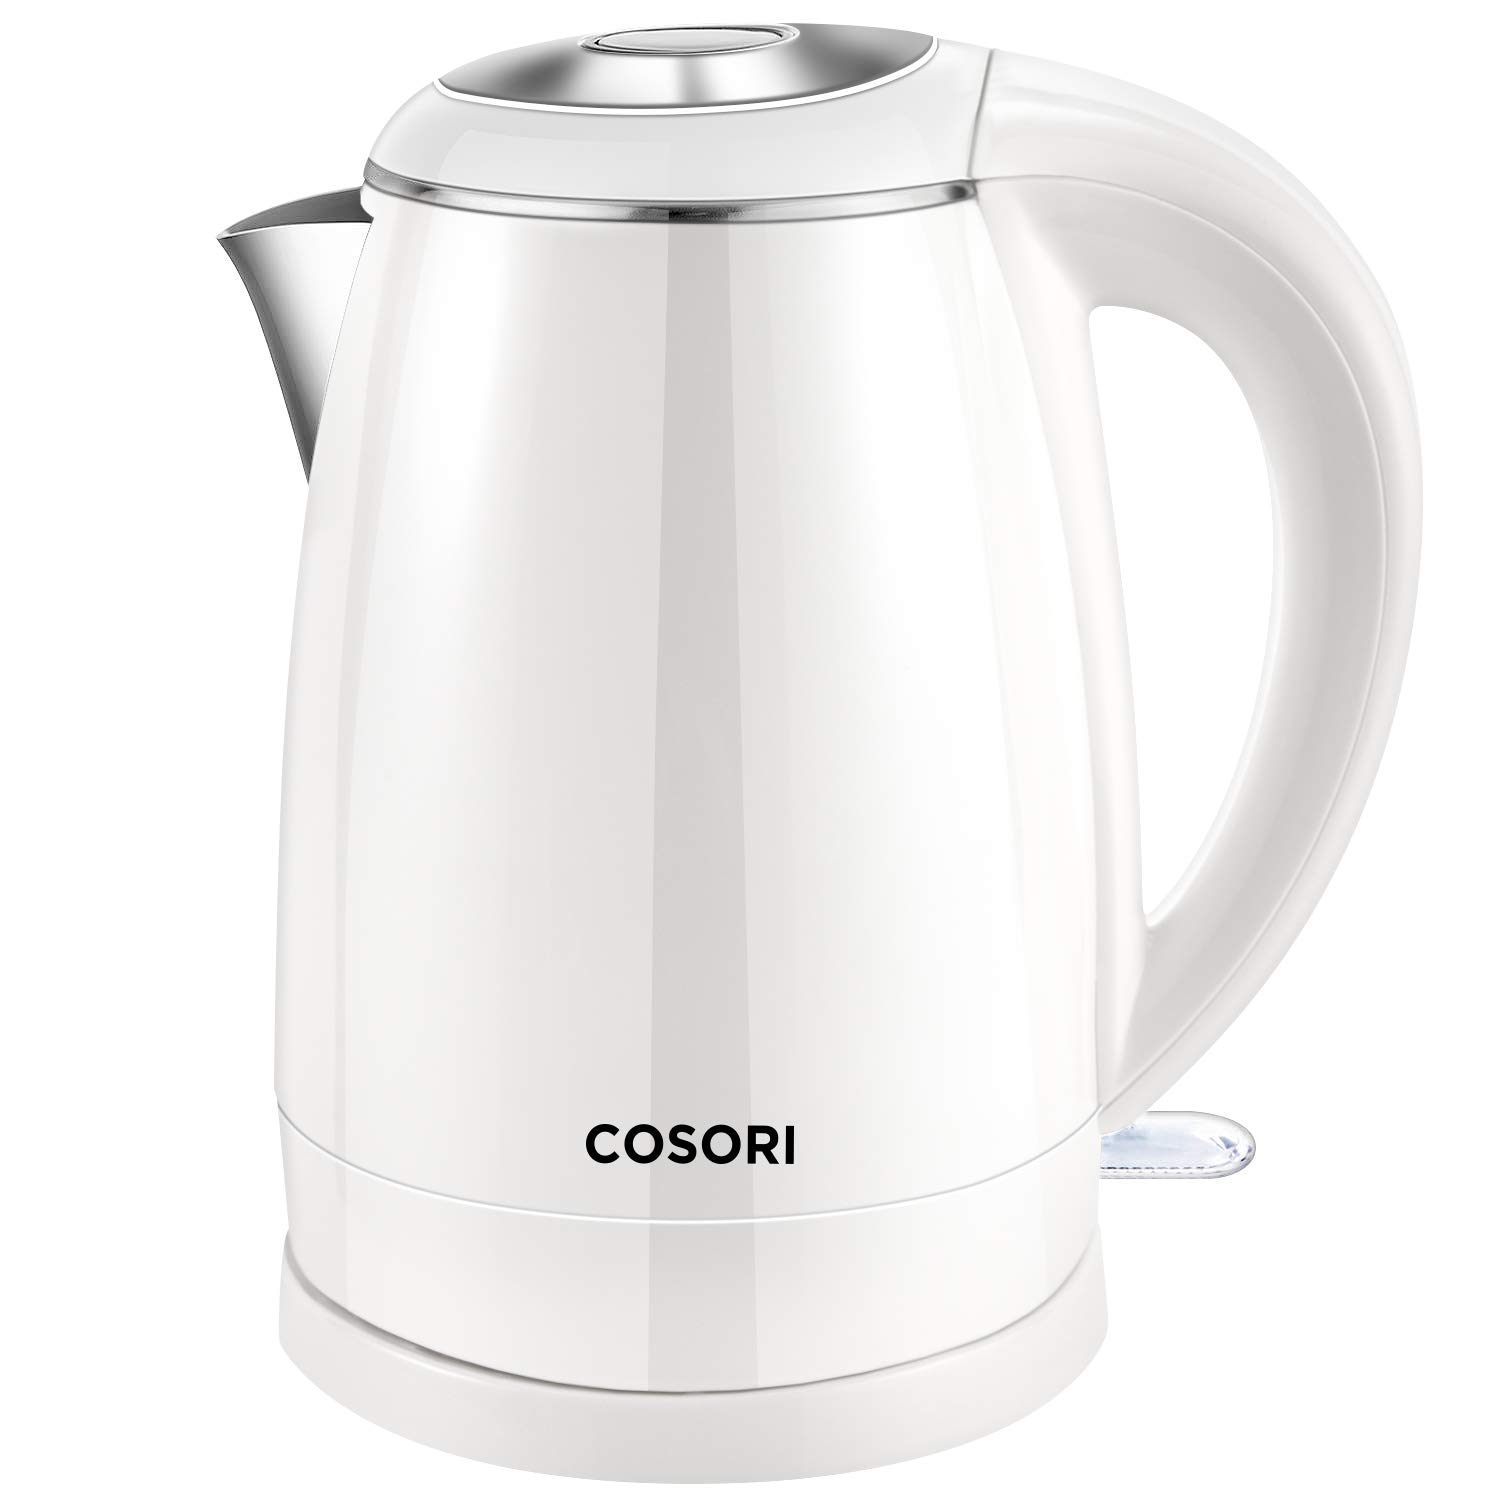 COSORI Electric Kettle(BPA Free), 1.8 Qt Double Wall 304 Stainless Steel Water Boiler & Tea Kettle, Auto Shut-Off and Boil-Dry Protection, Cordless, FDA/ETL/CETL Approved, 2 Year Warranty, White